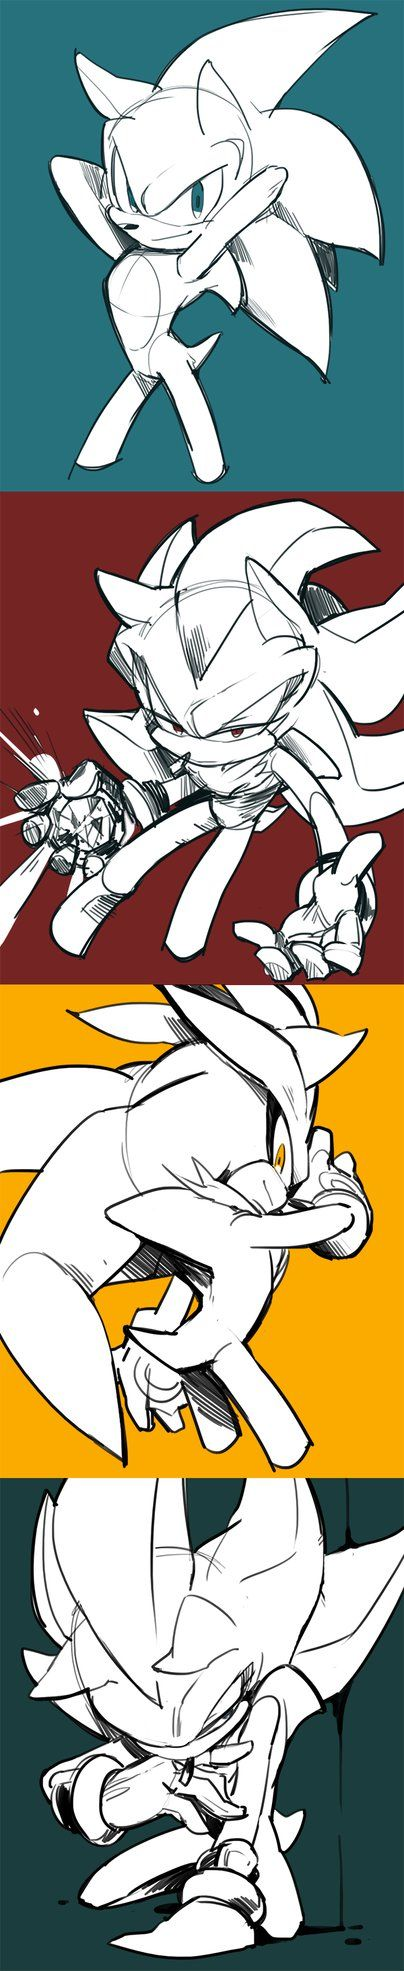 456 best silver the hedgehog images on pinterest shadows